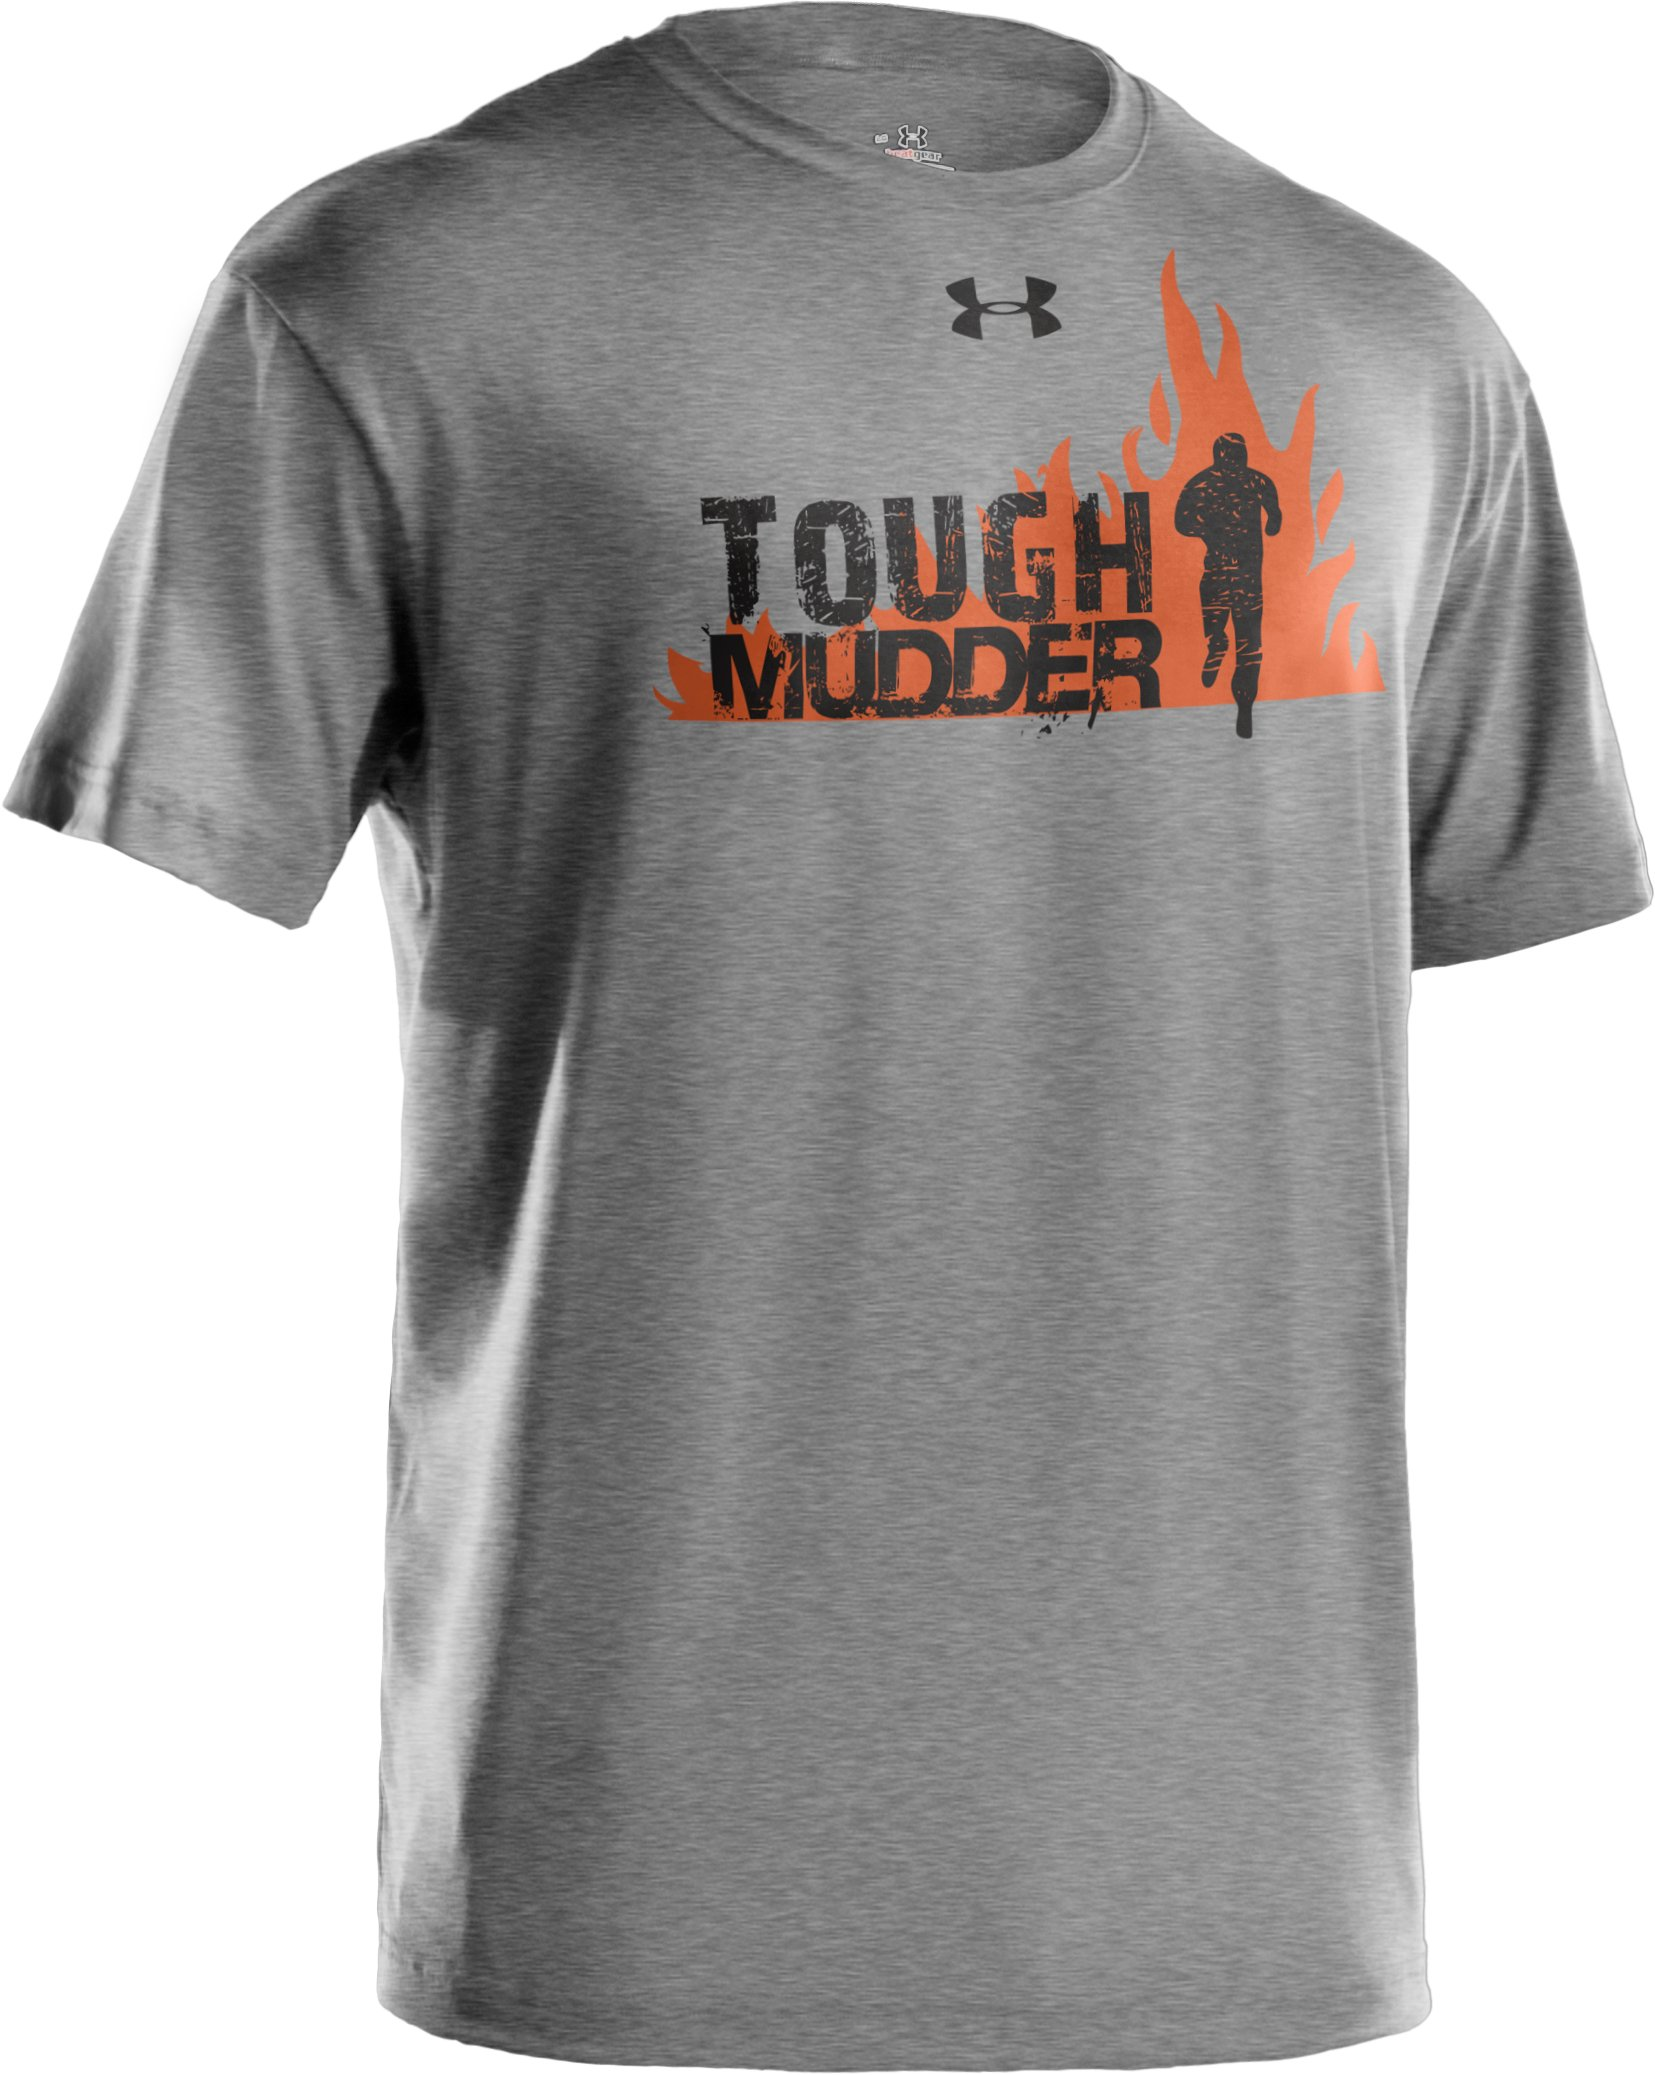 Men's Tough Mudder Rub Some Mud On It T-Shirt, True Gray Heather, undefined